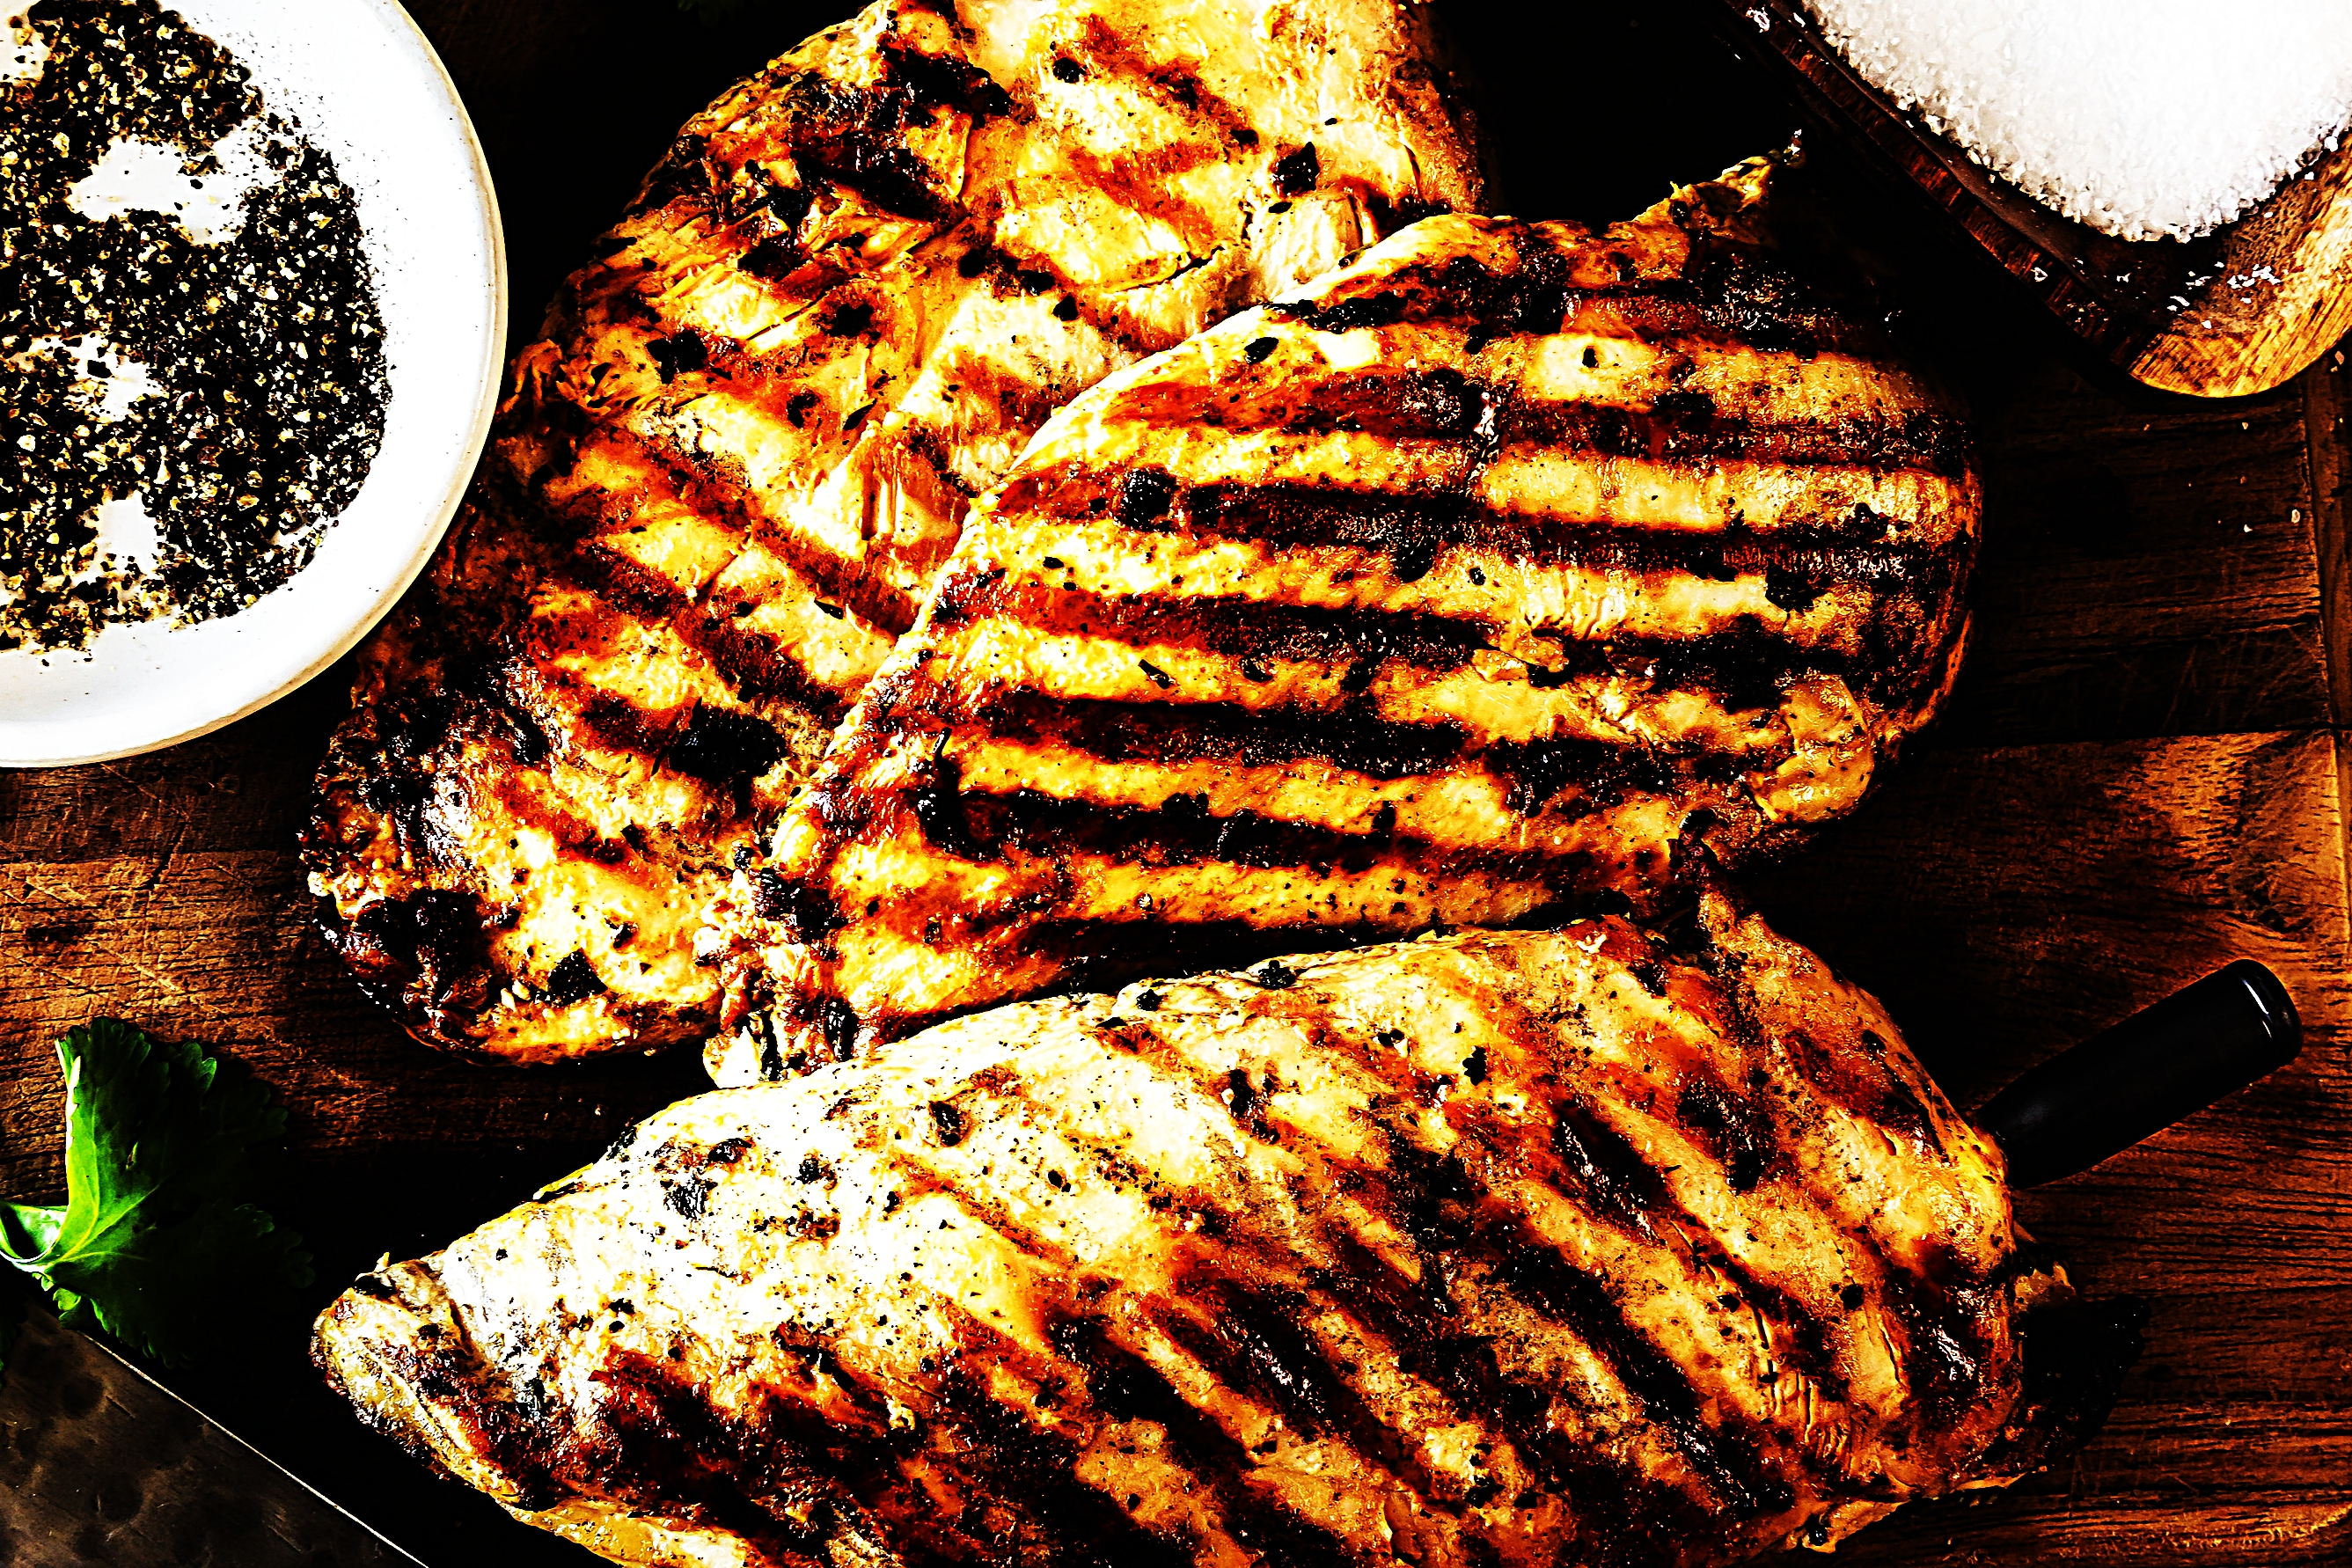 Stupid-Easy Recipe for Perfect No-Fail Grilled Chicken Breasts (#1 Top-Rated)